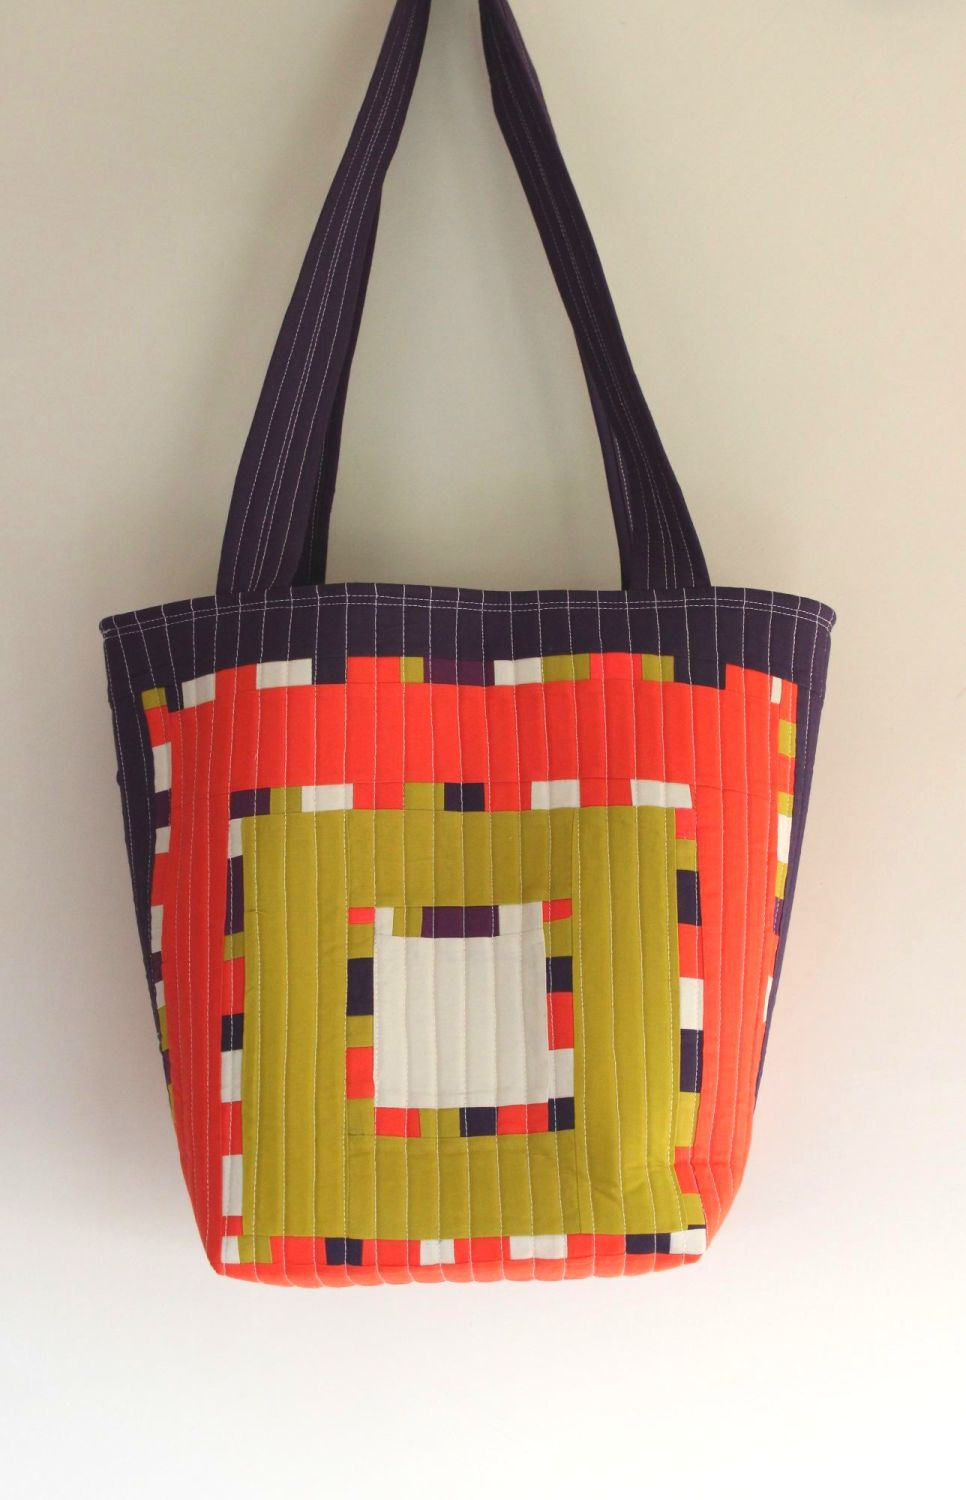 Around The Block Quilted Tote Bag